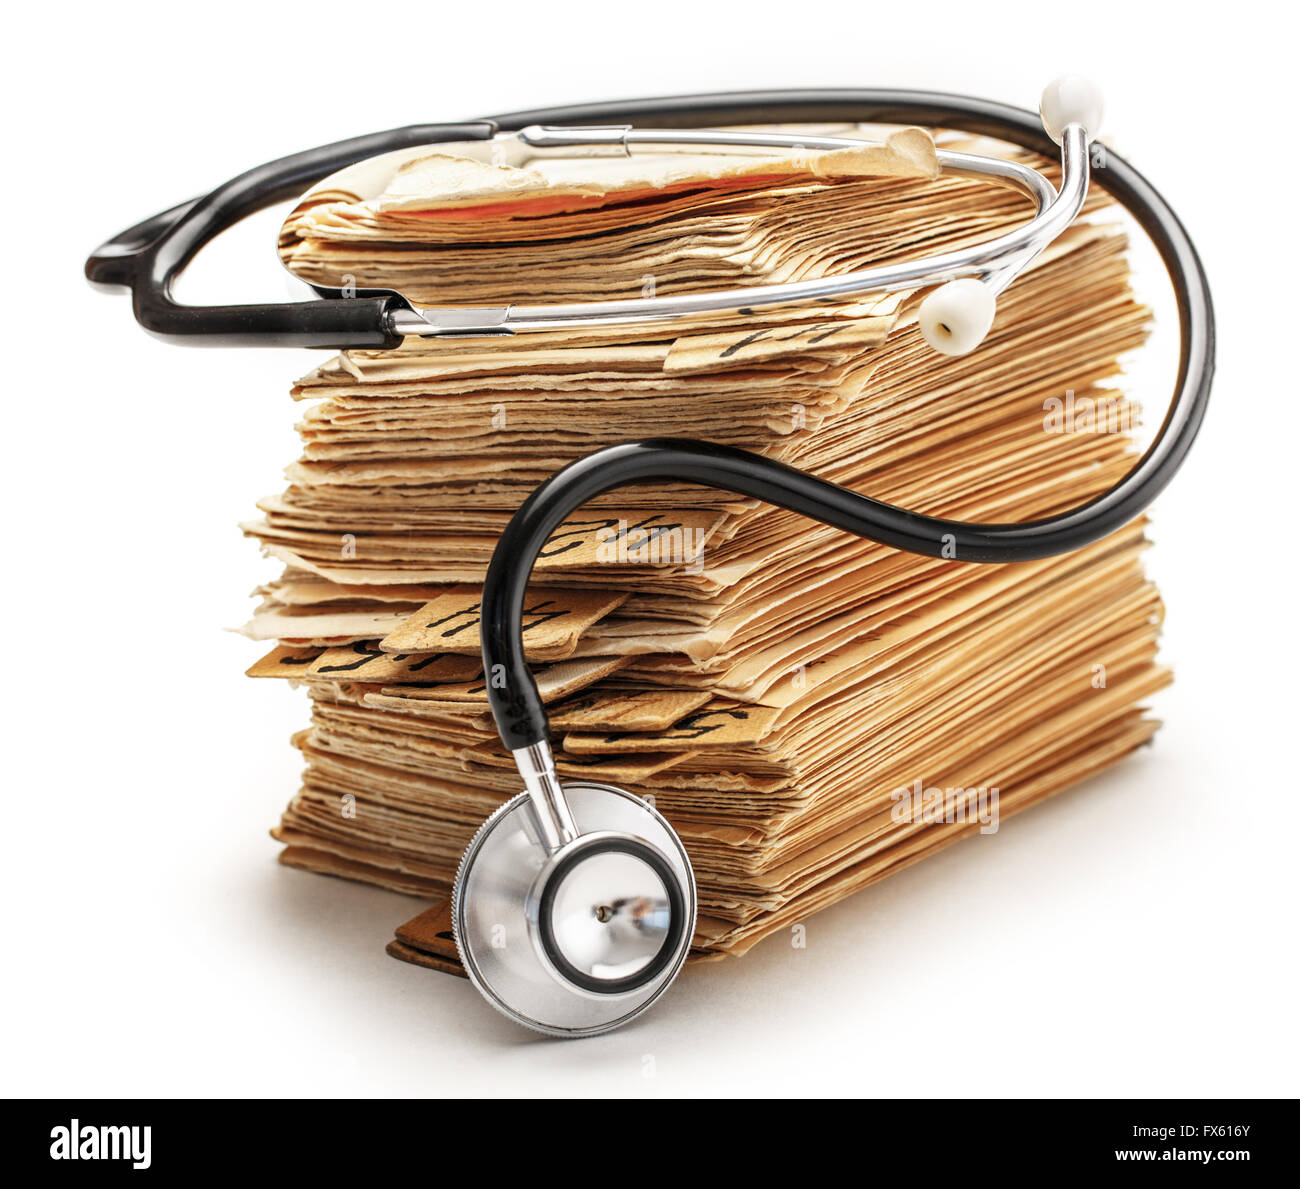 Pile of old cards with stethoscope in closeup - Stock Image